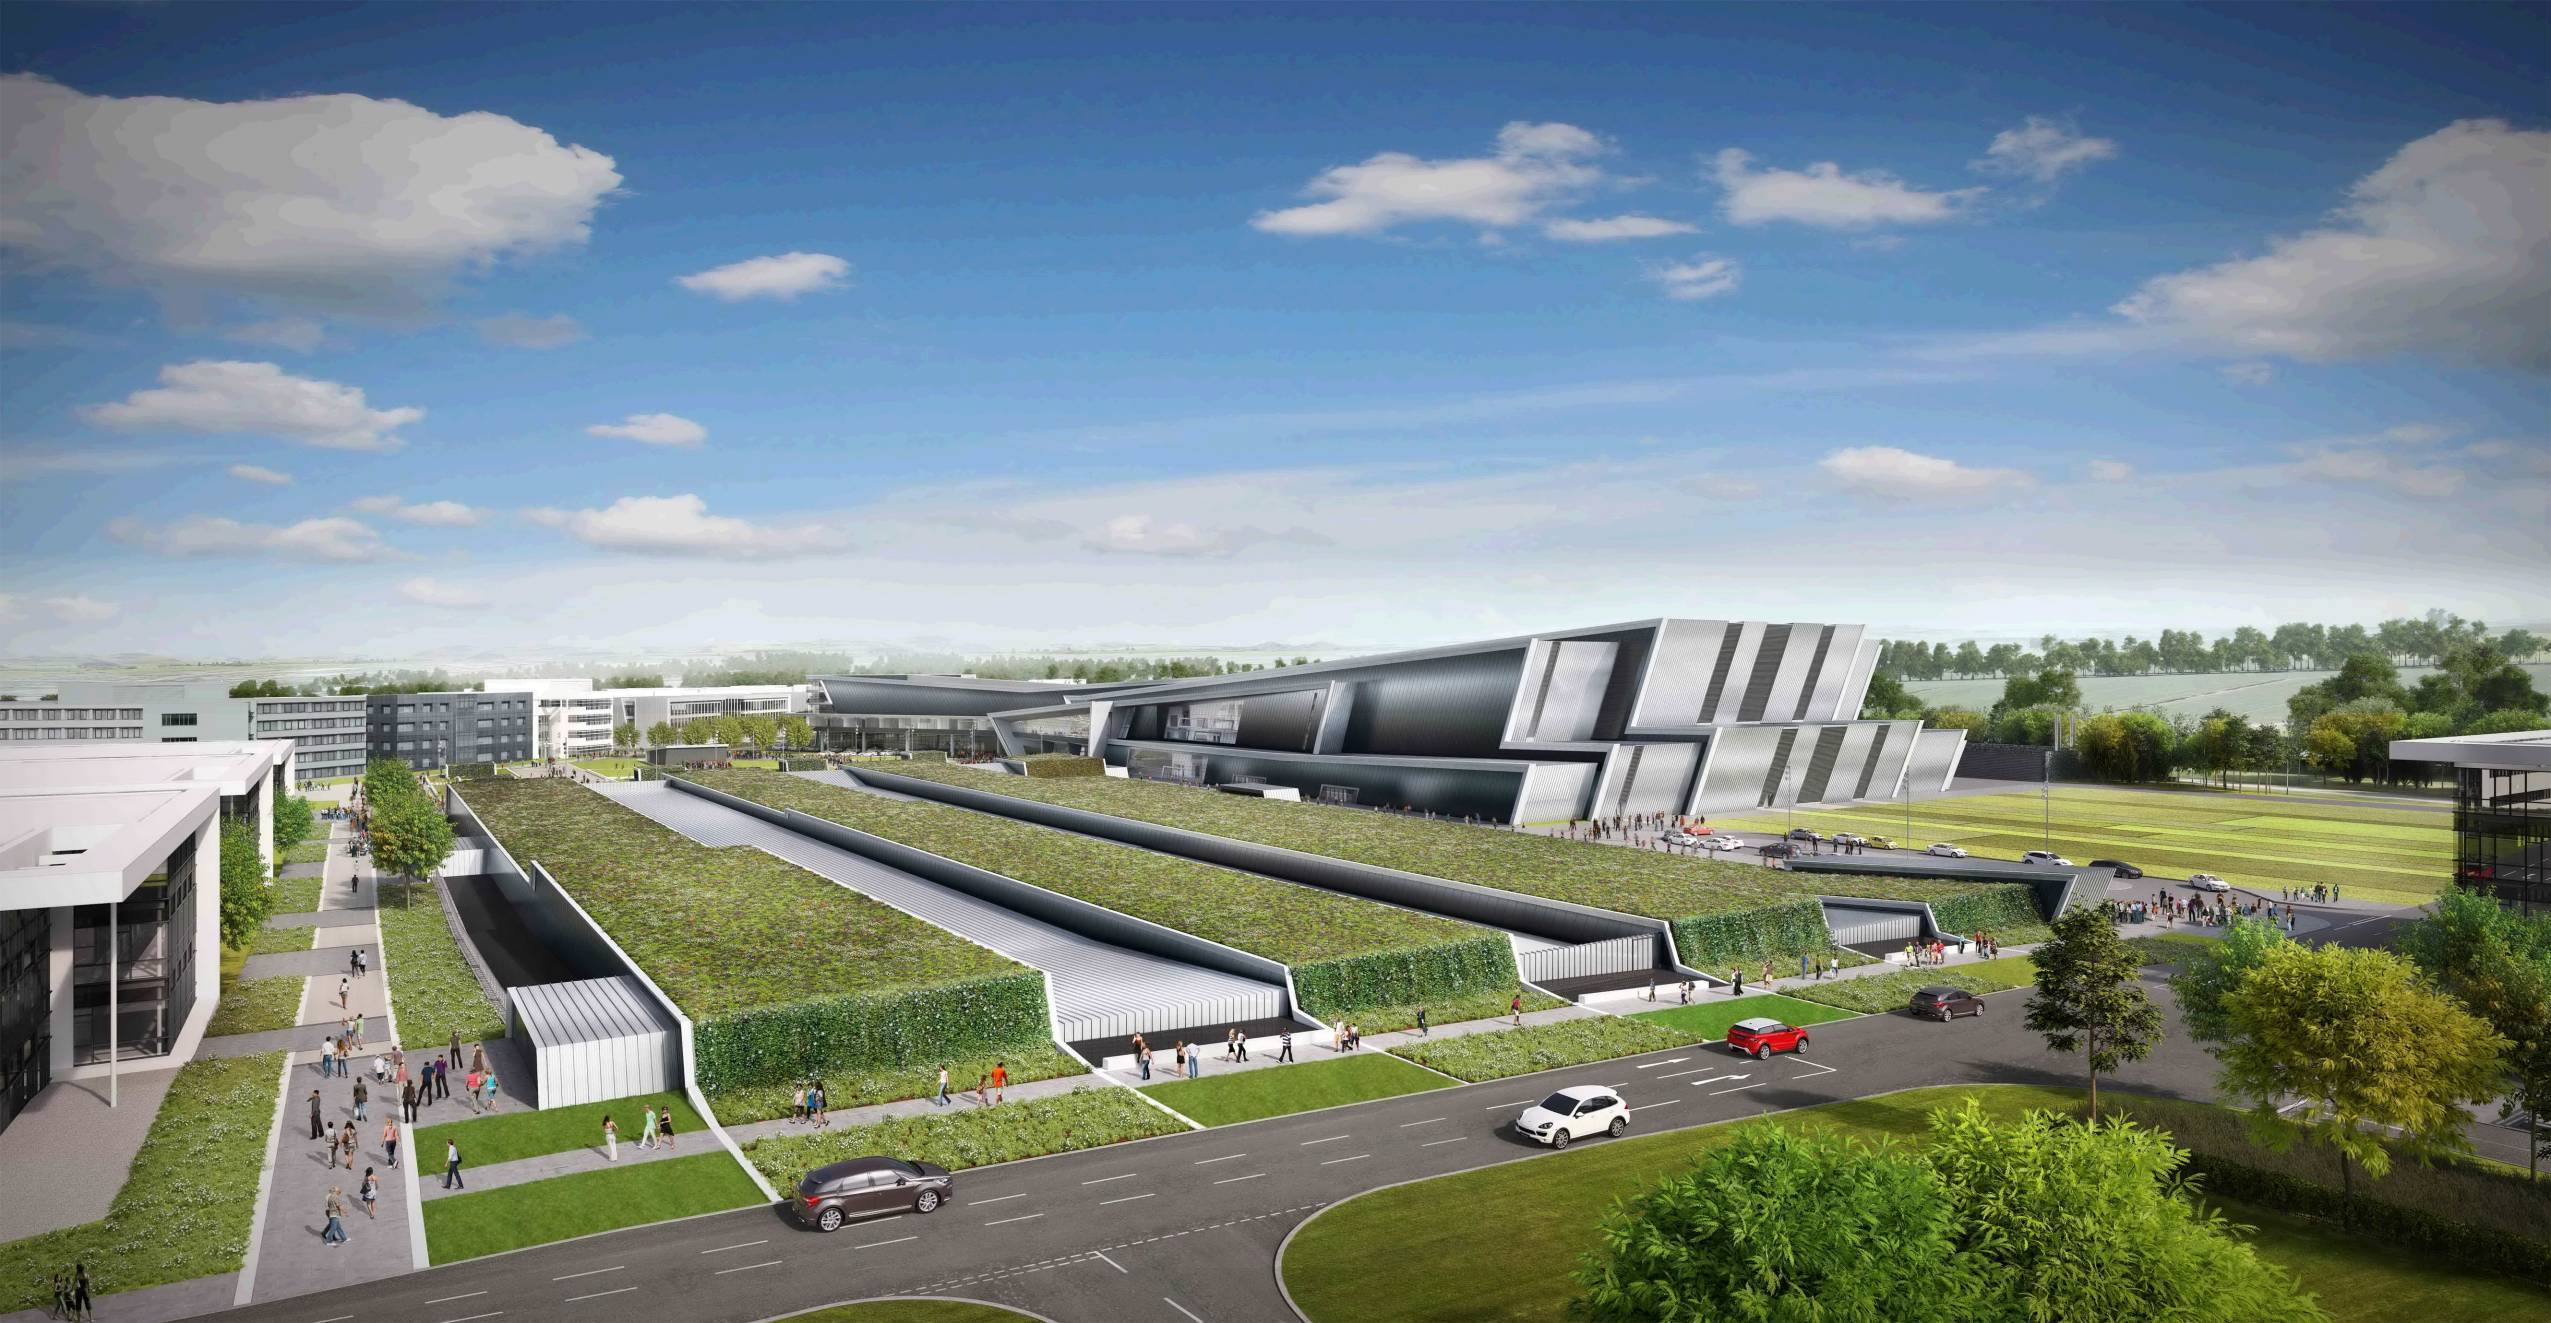 Artist impression of the planned new AECC.